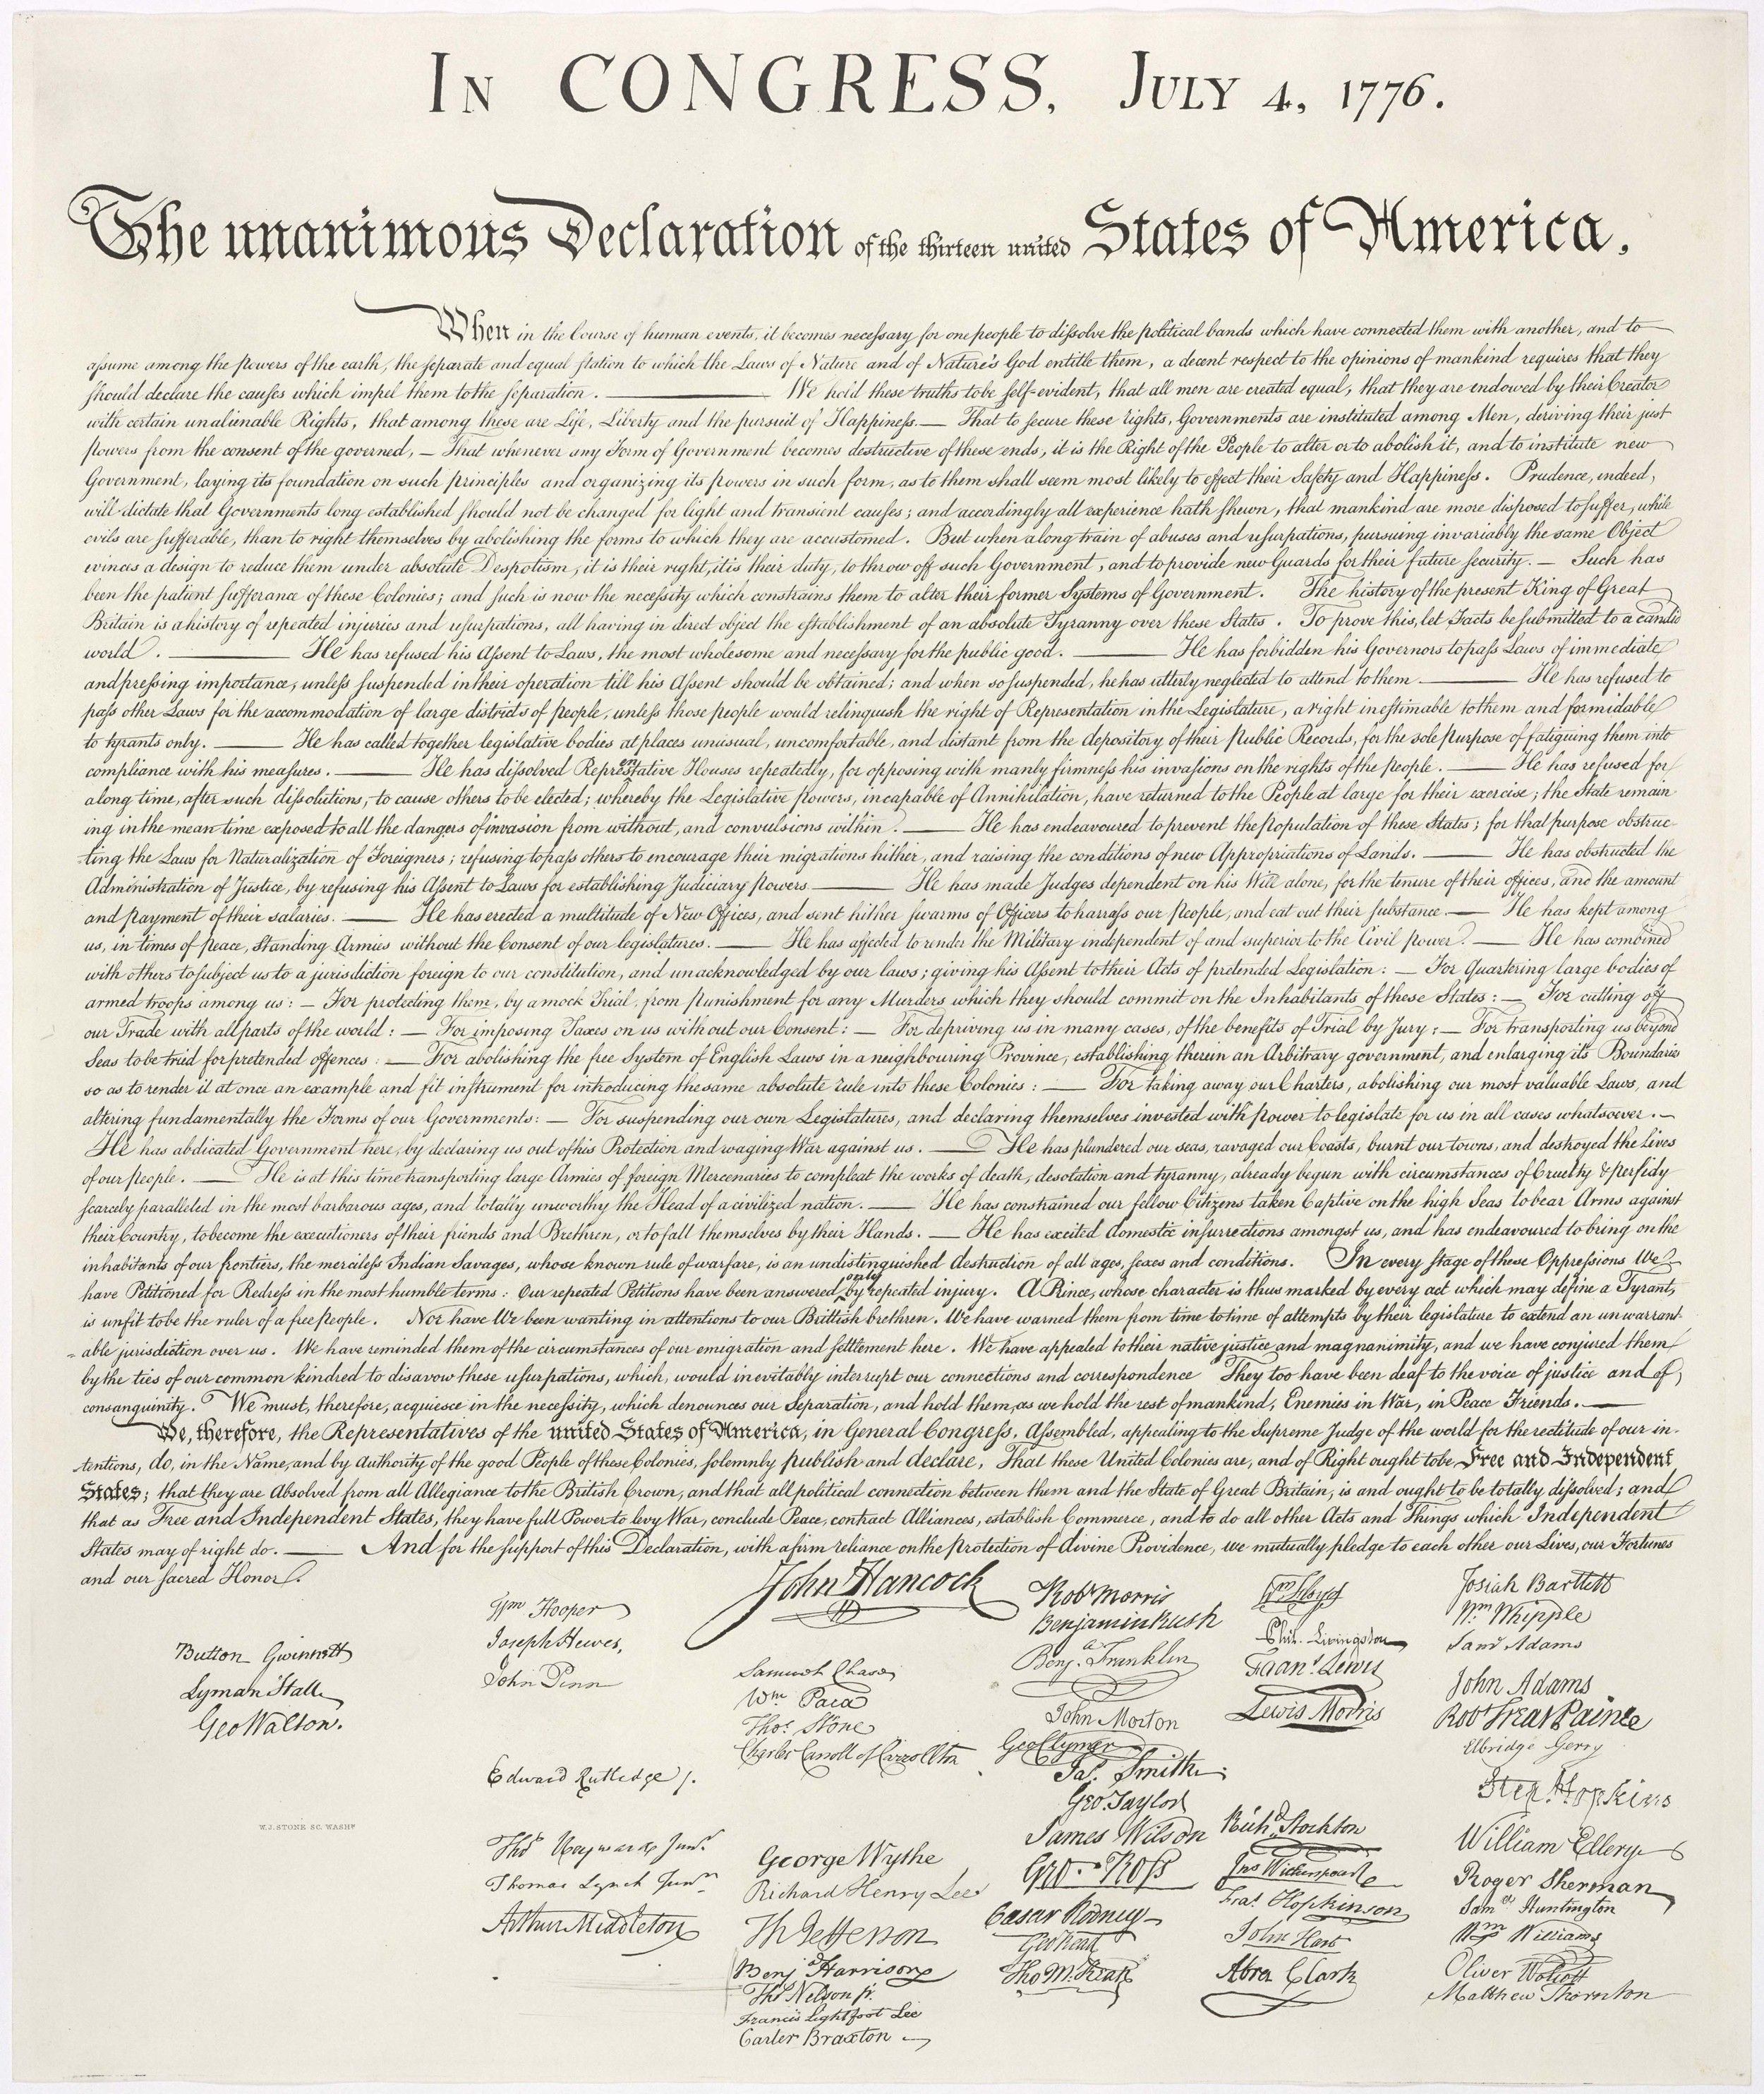 Democracy: Declaration of Independence (All men...)